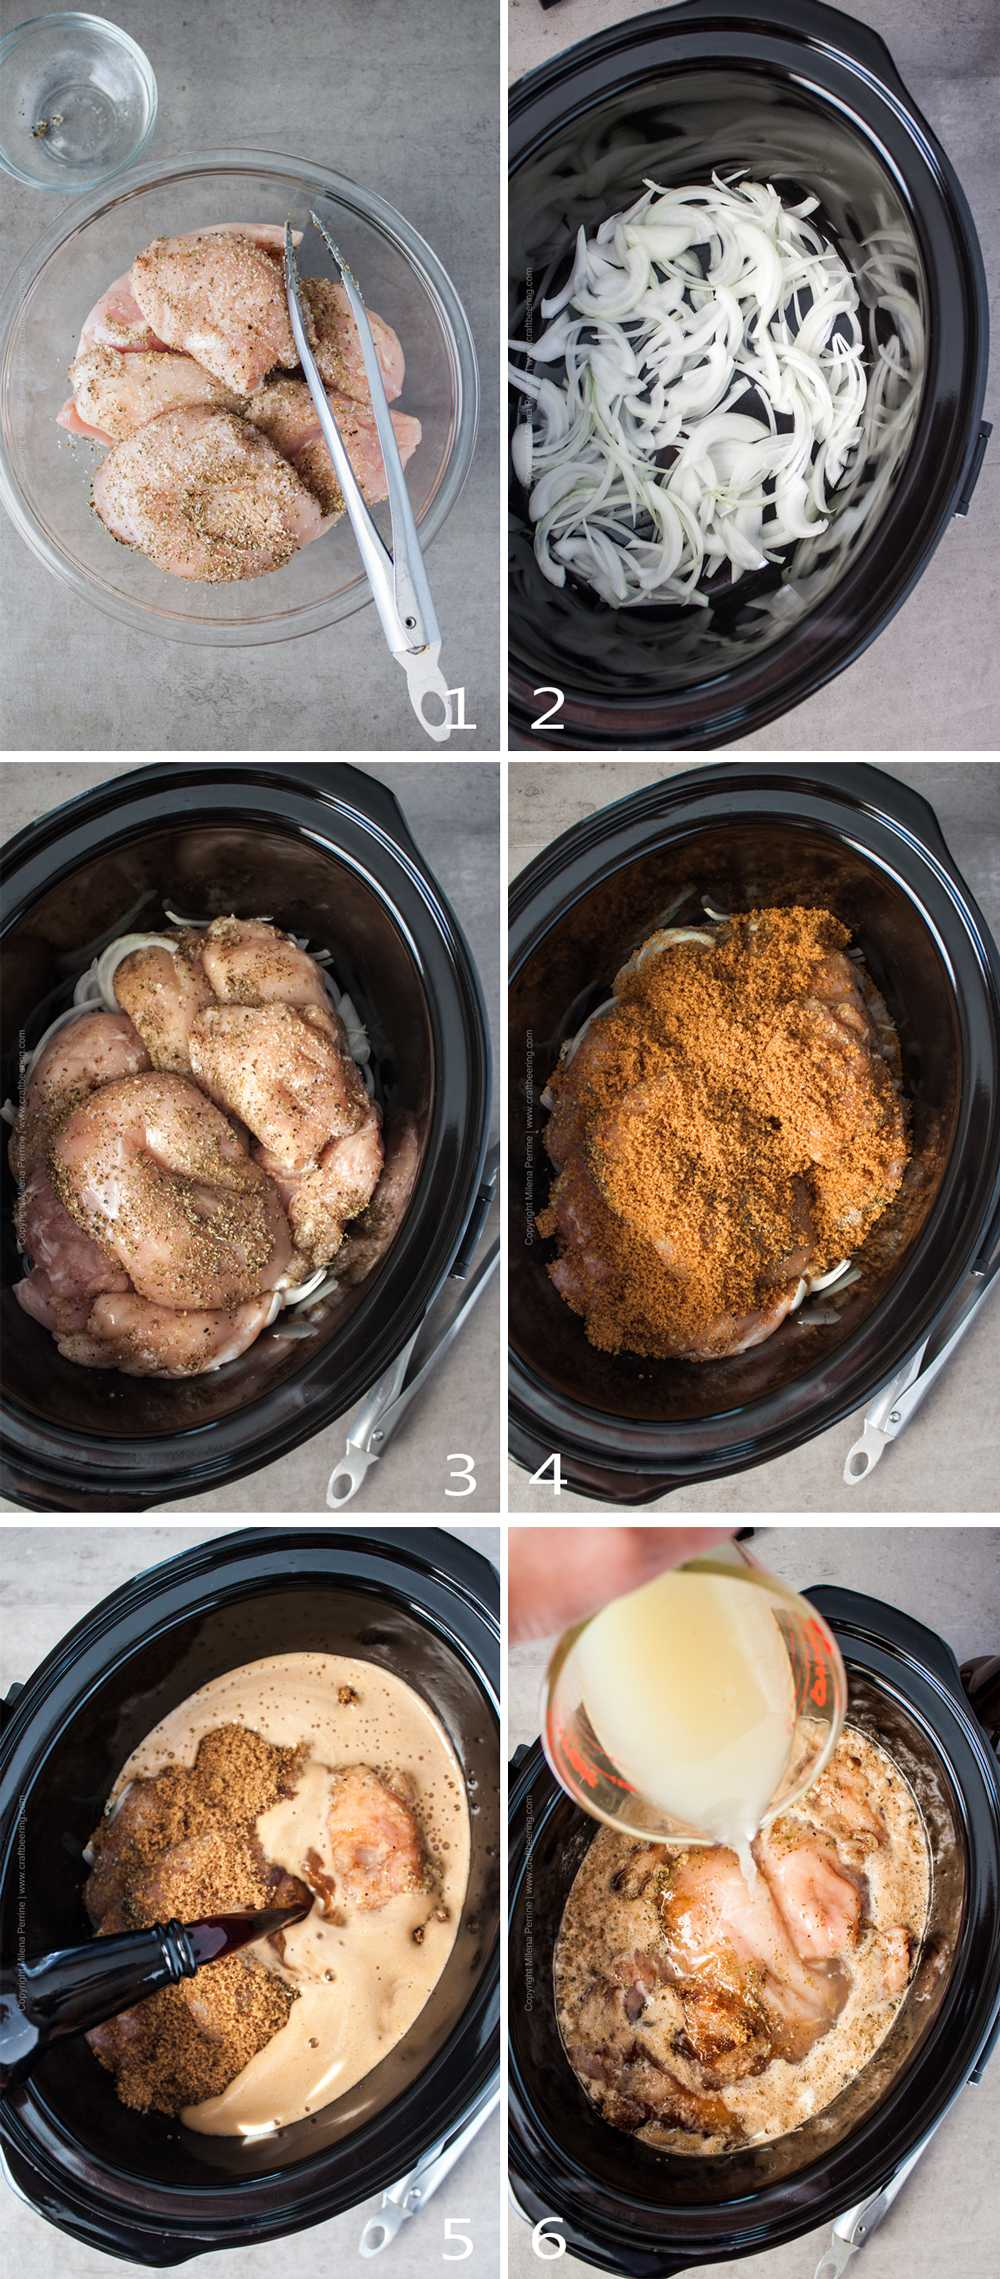 How to make slow cooker beer shredded chicken.